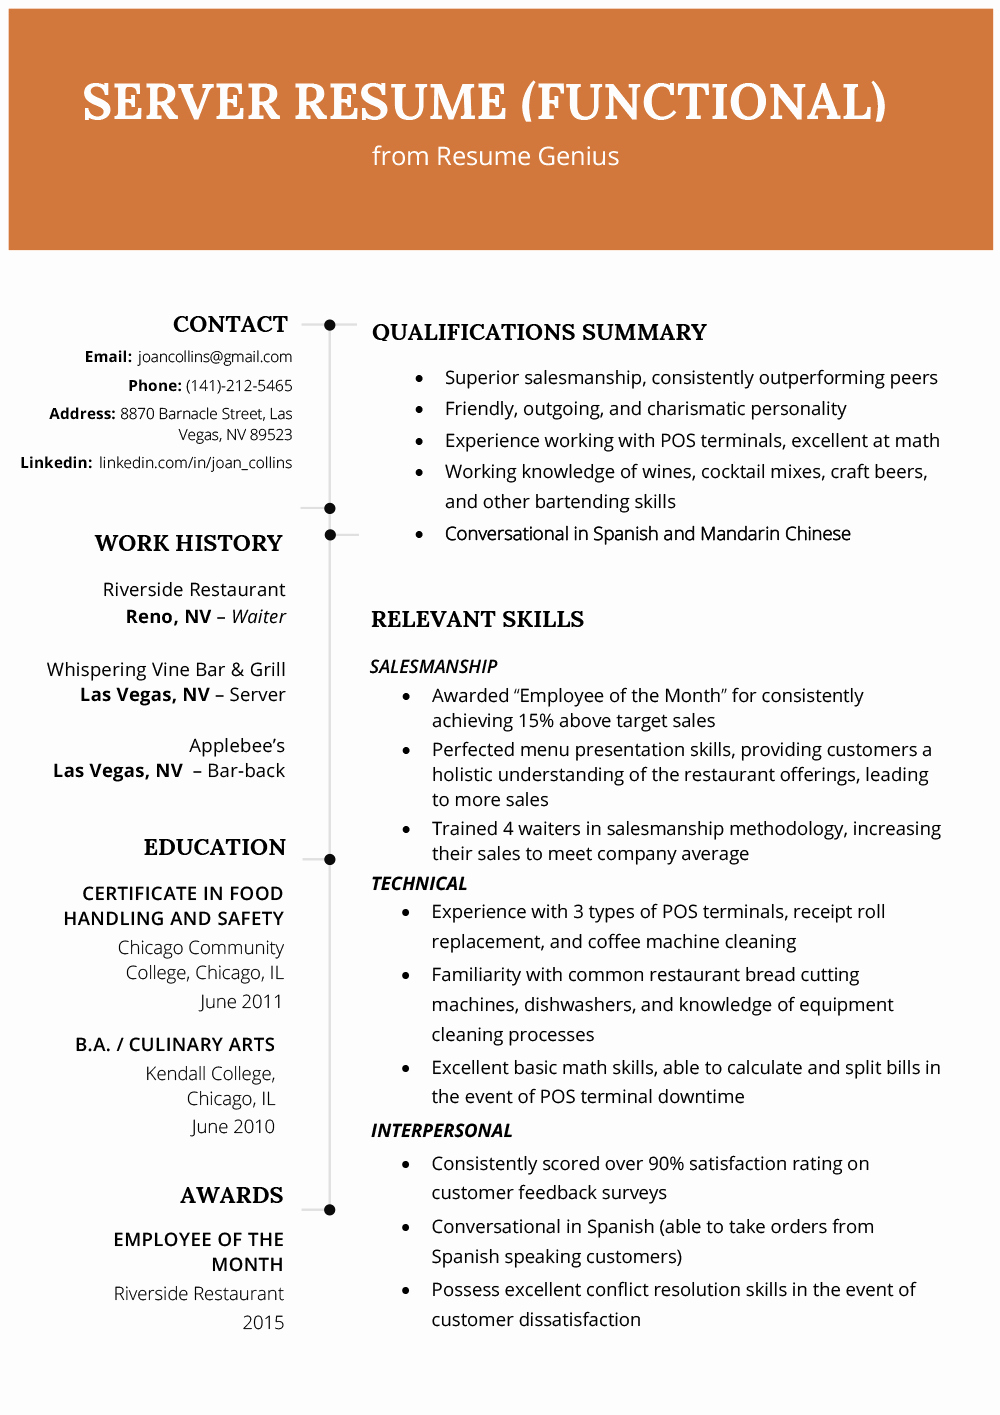 Functional Resume Template Word Awesome Resume format Best Resume formats for 2019